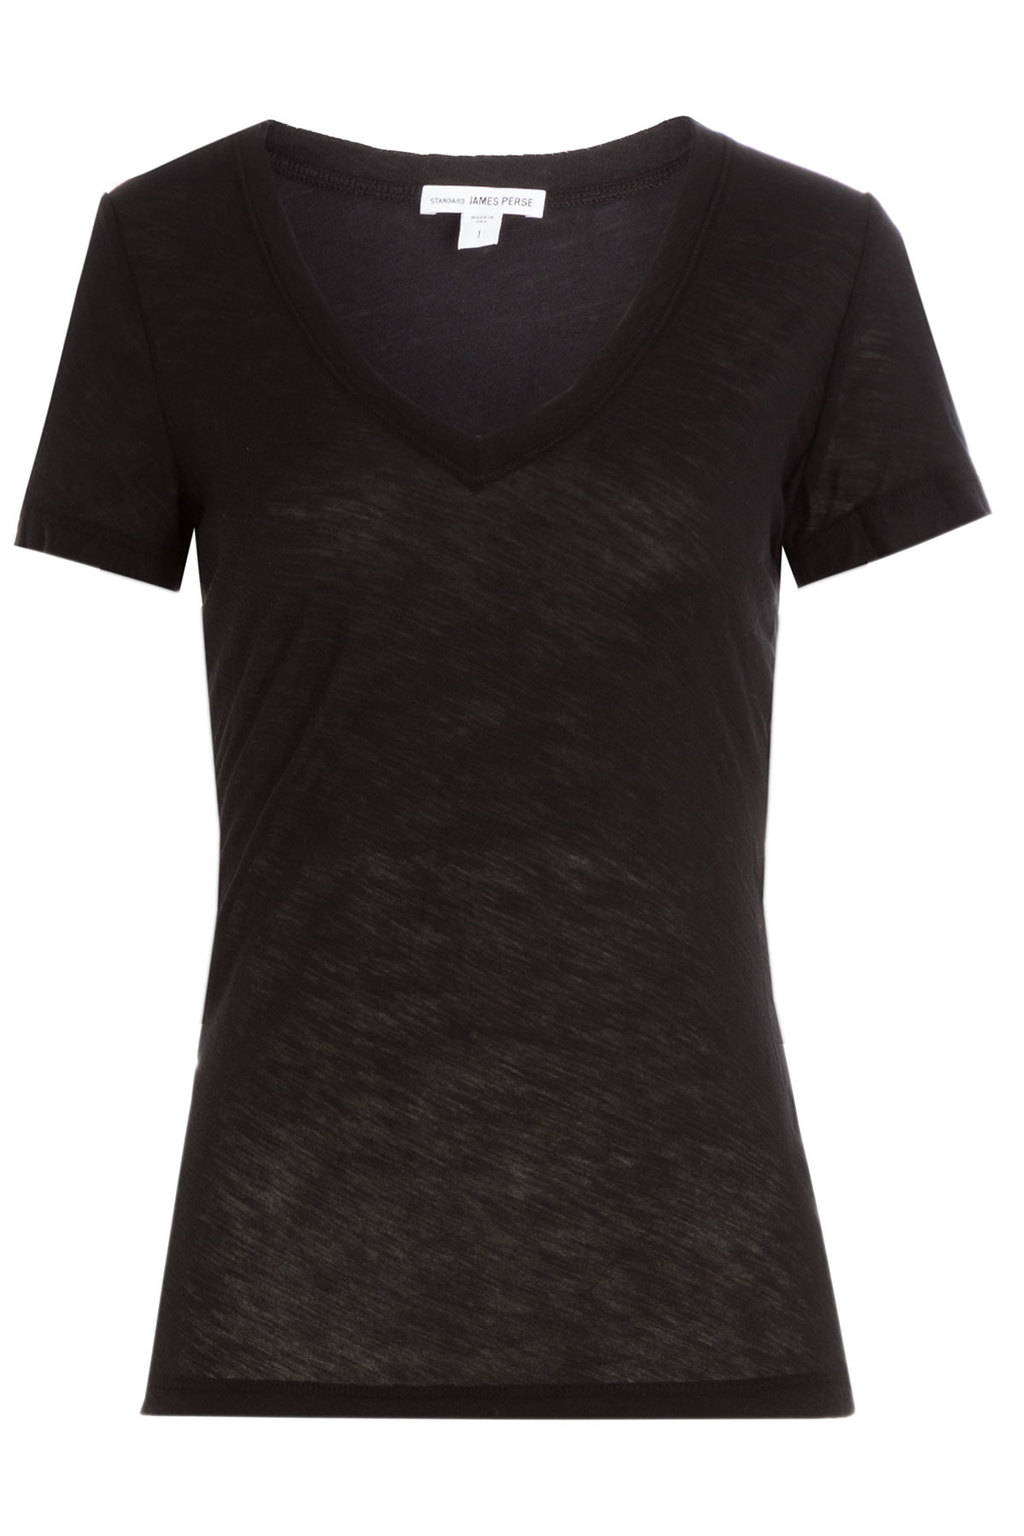 Cotton T Shirt - neckline: v-neck; pattern: plain; style: t-shirt; predominant colour: black; occasions: casual; length: standard; fibres: cotton - 100%; fit: body skimming; sleeve length: short sleeve; sleeve style: standard; pattern type: fabric; texture group: jersey - stretchy/drapey; wardrobe: basic; season: a/w 2016